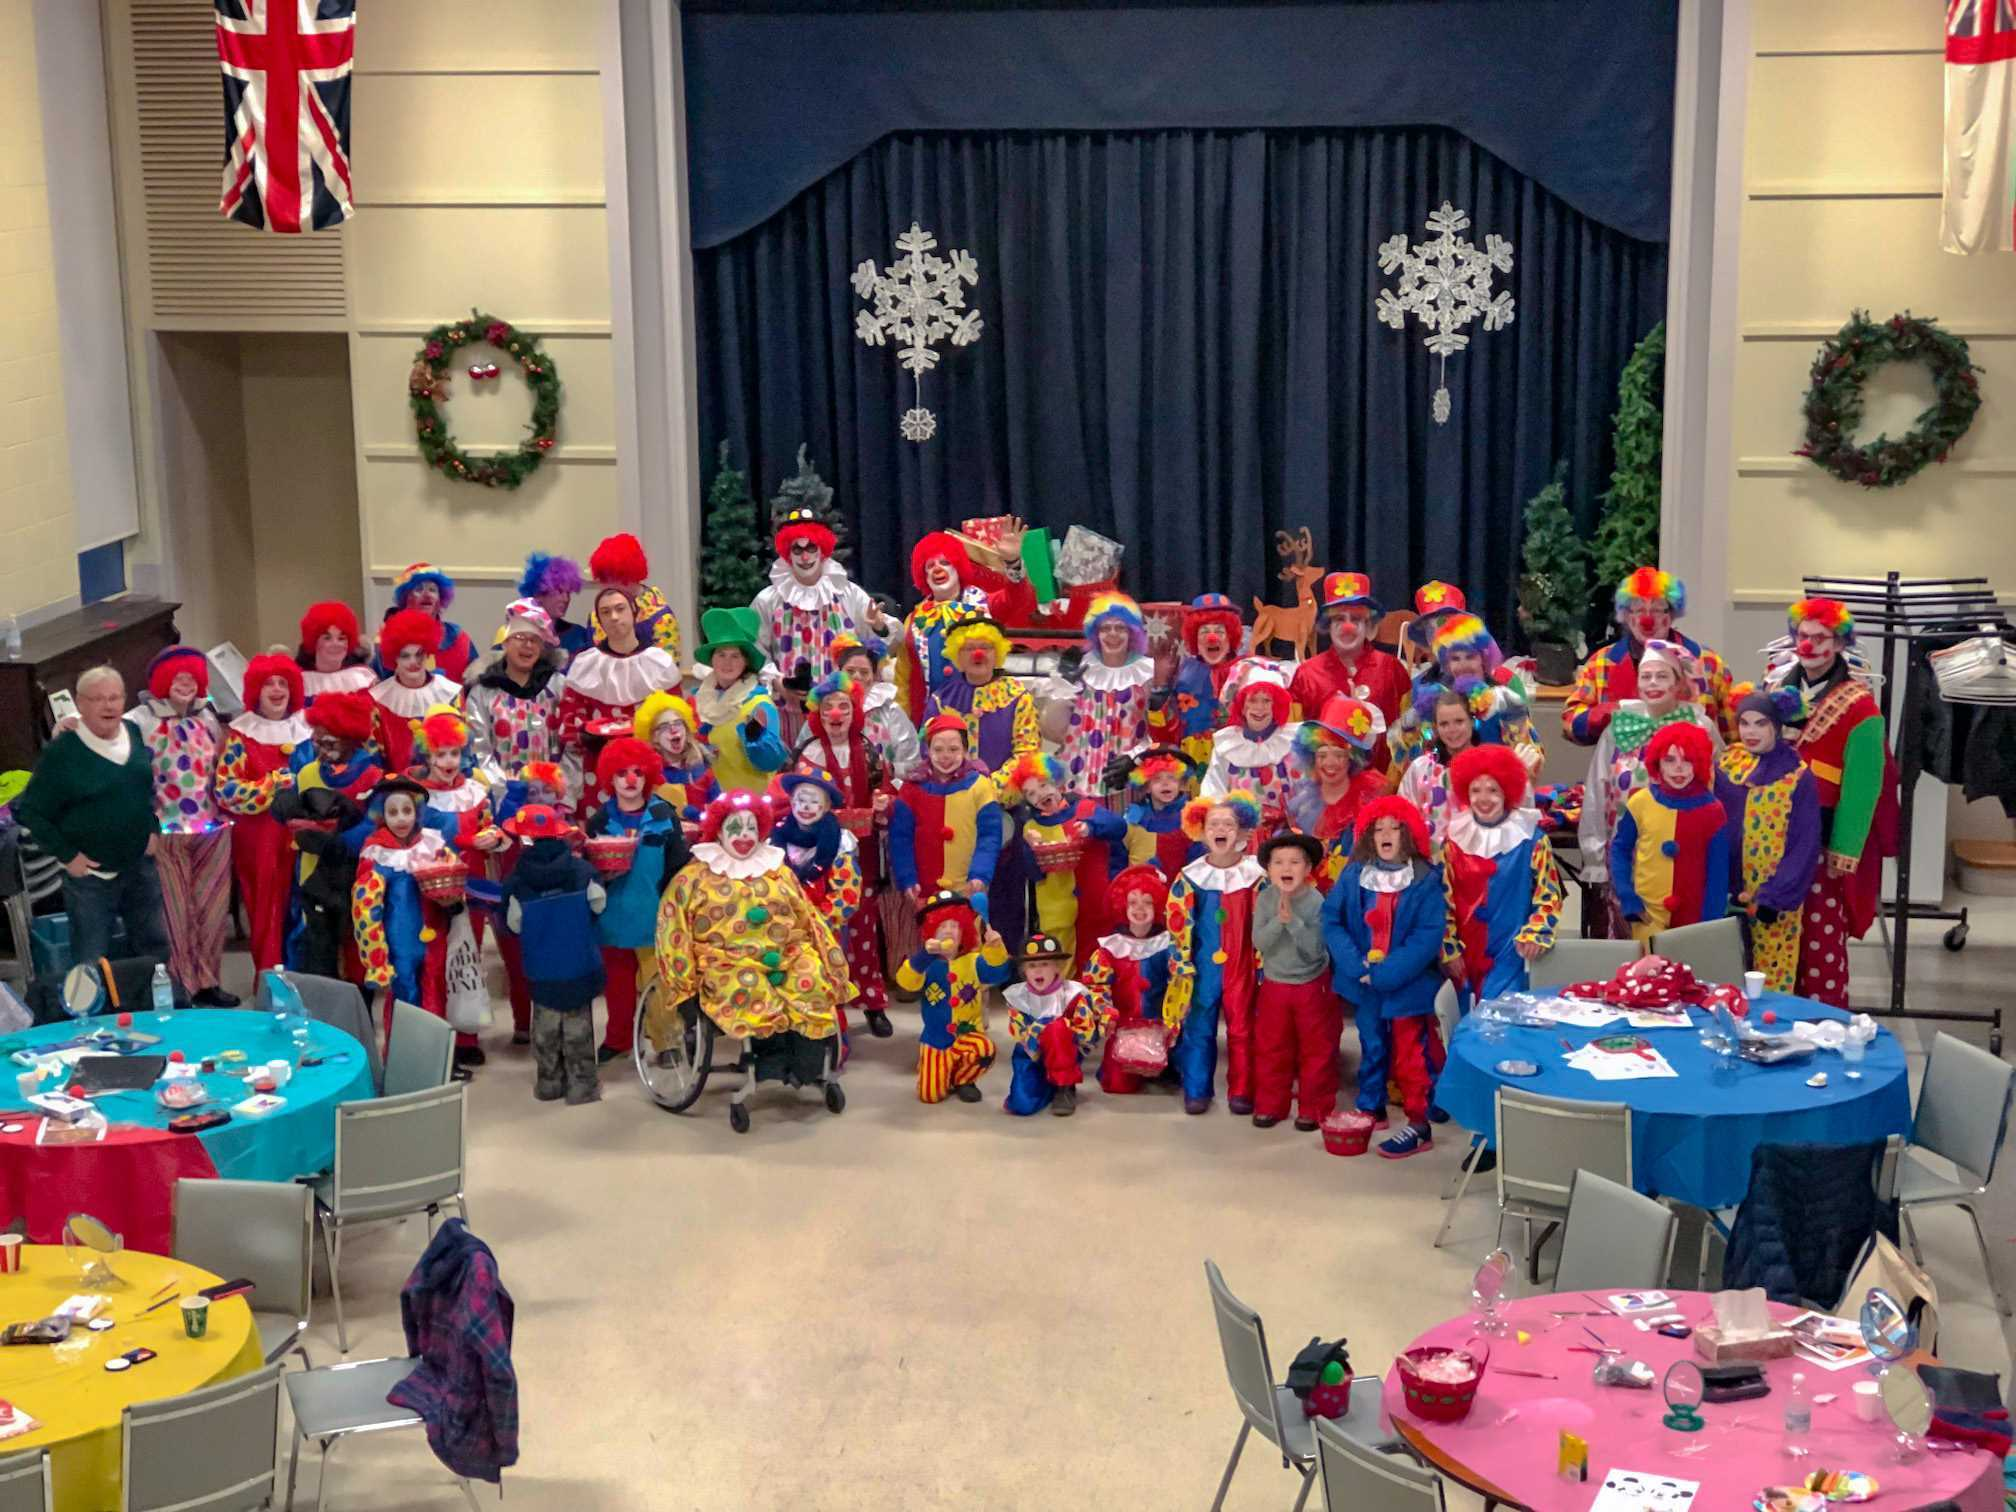 Another great year of Clowning Around with The Rotary Club of Brantford in the JCI Parade!